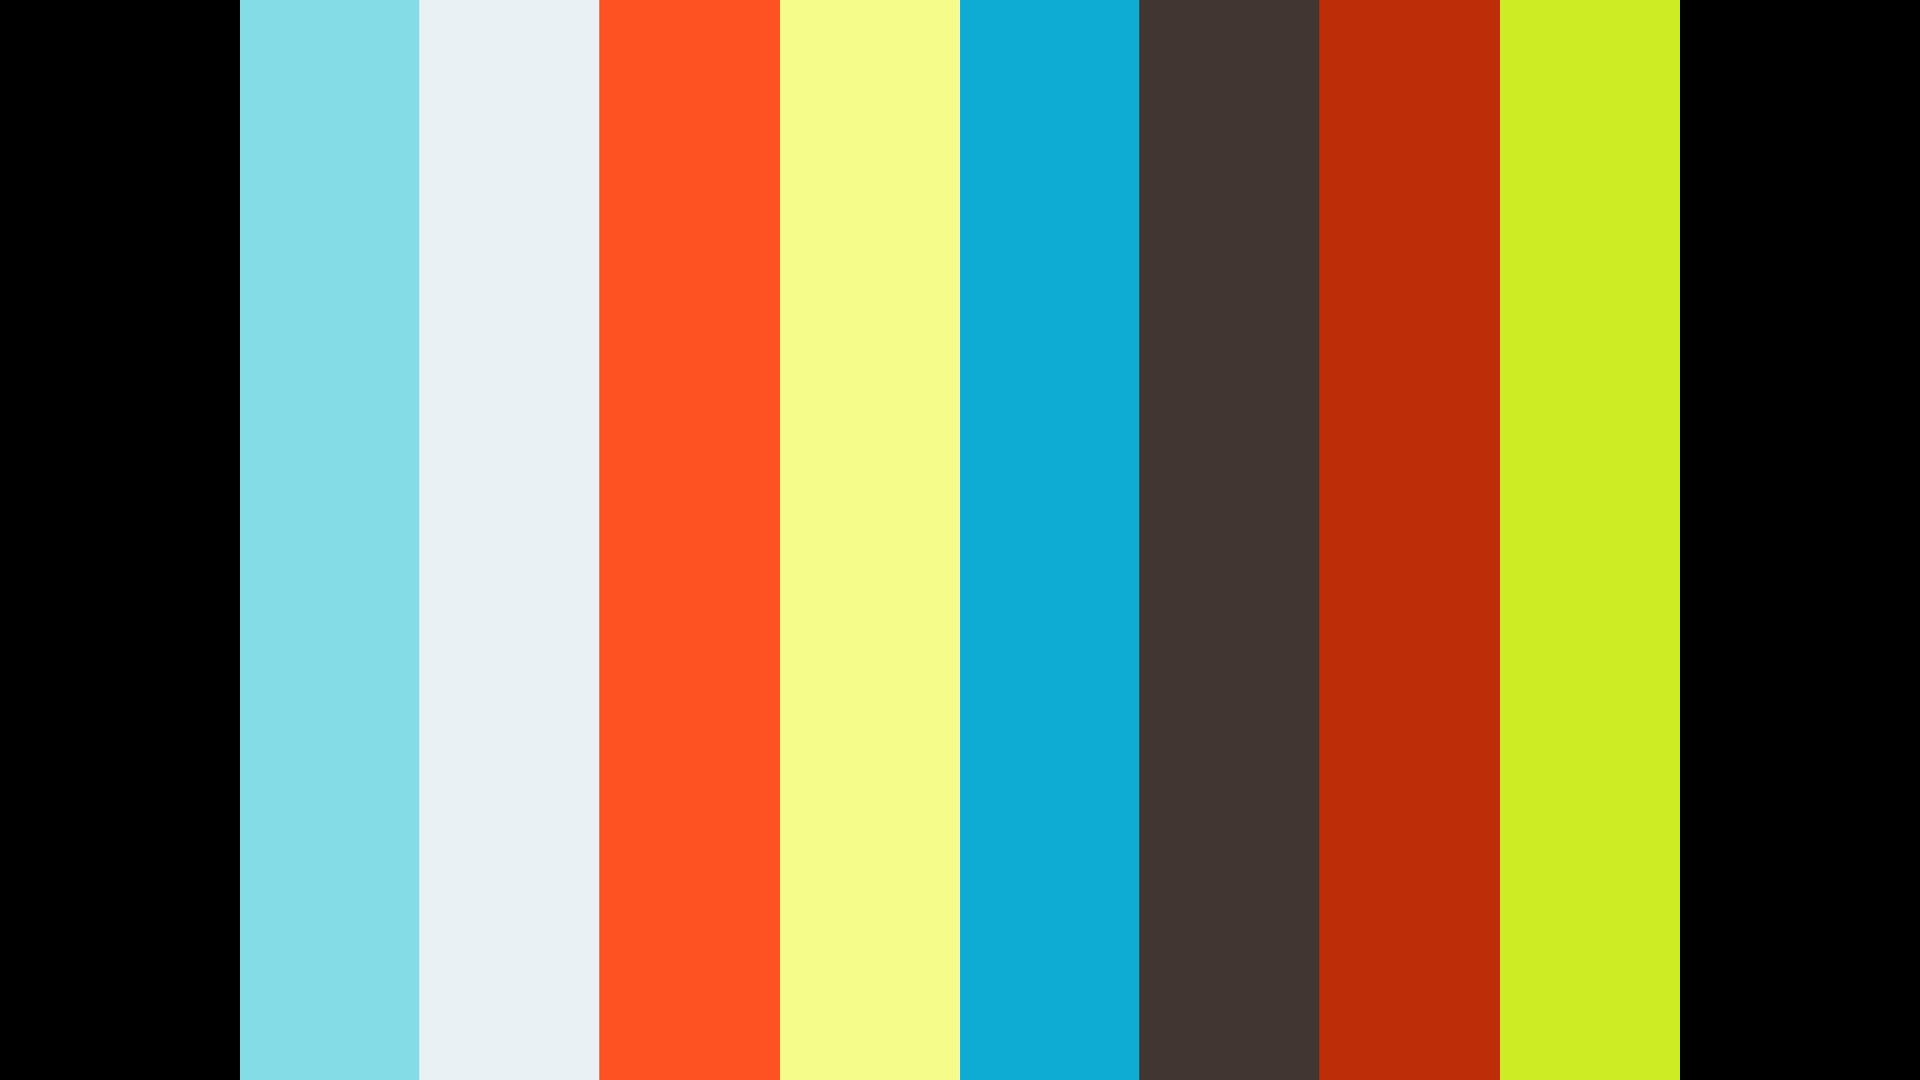 Caldi Abbracci - backstage shooting